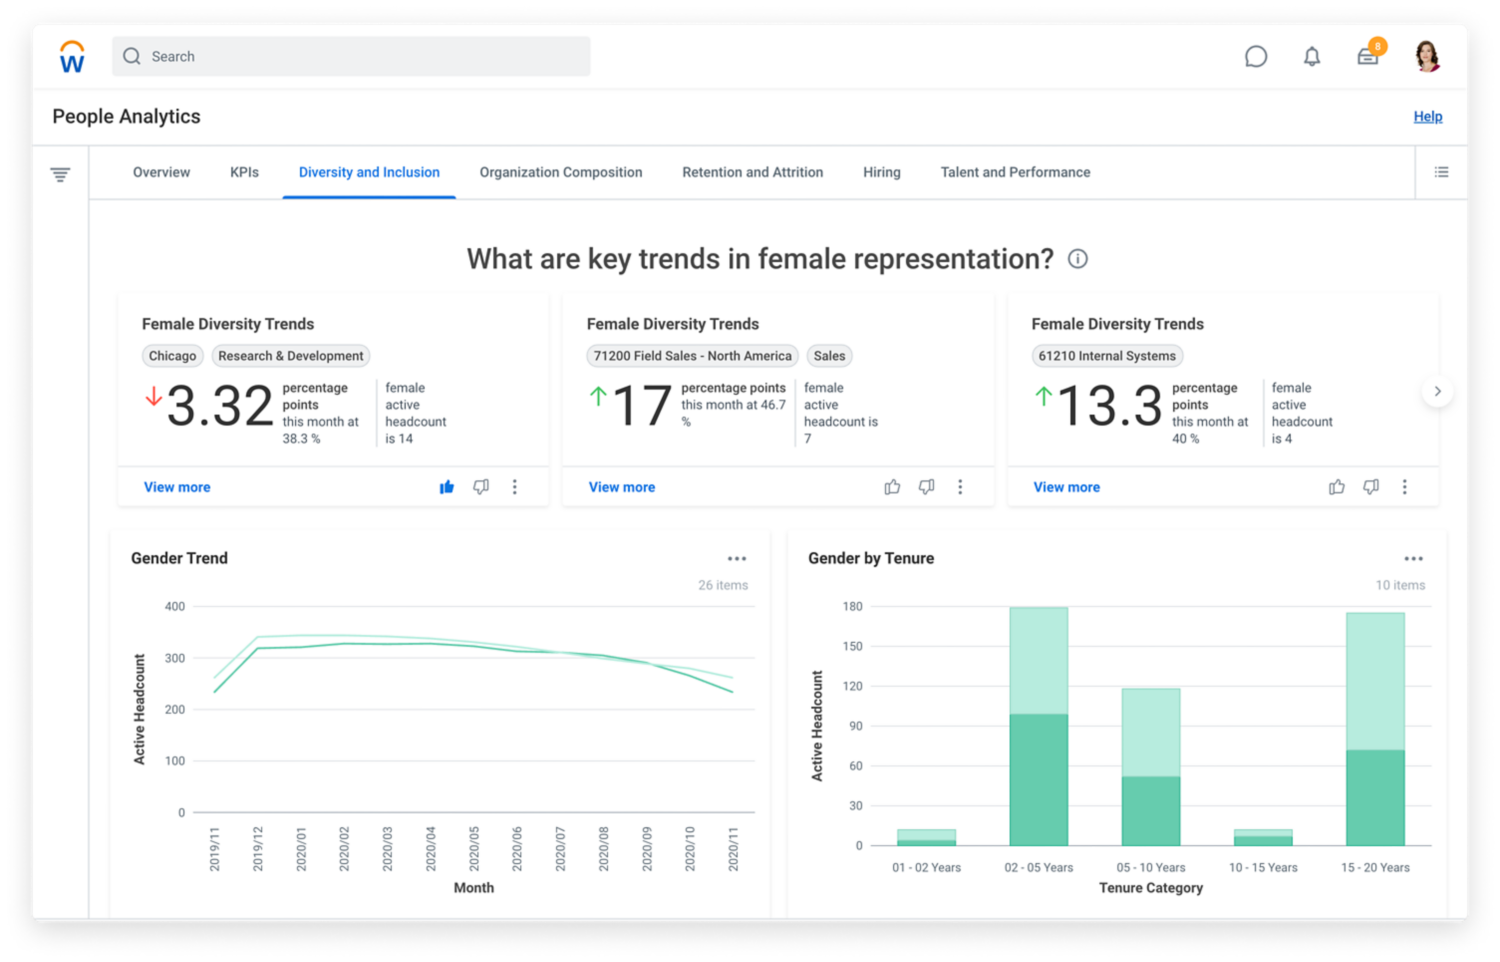 People Analytics dashboard showing female diversity and inclusion trends and gaps.